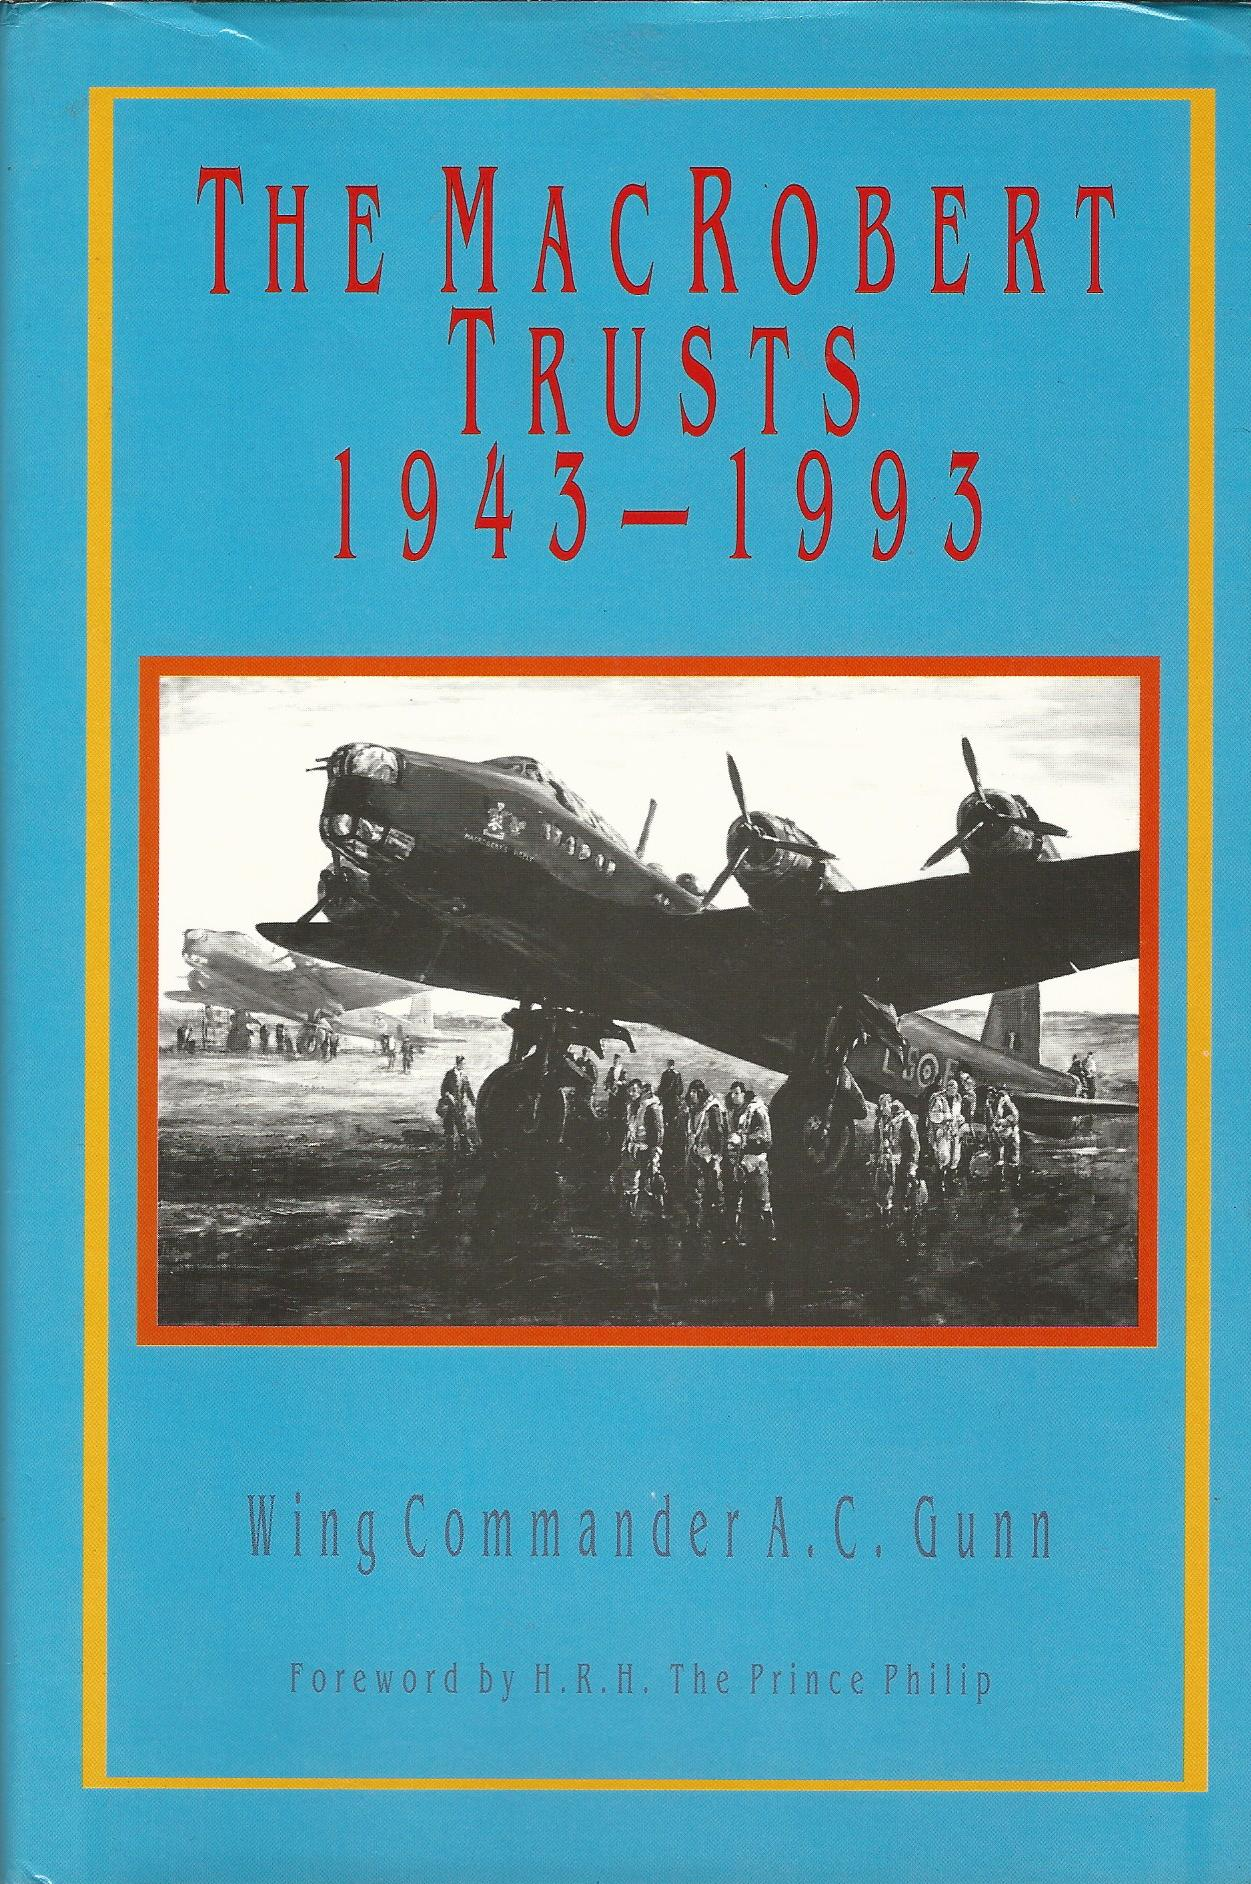 Image for The MacRobert Trusts 1943 - 1993.